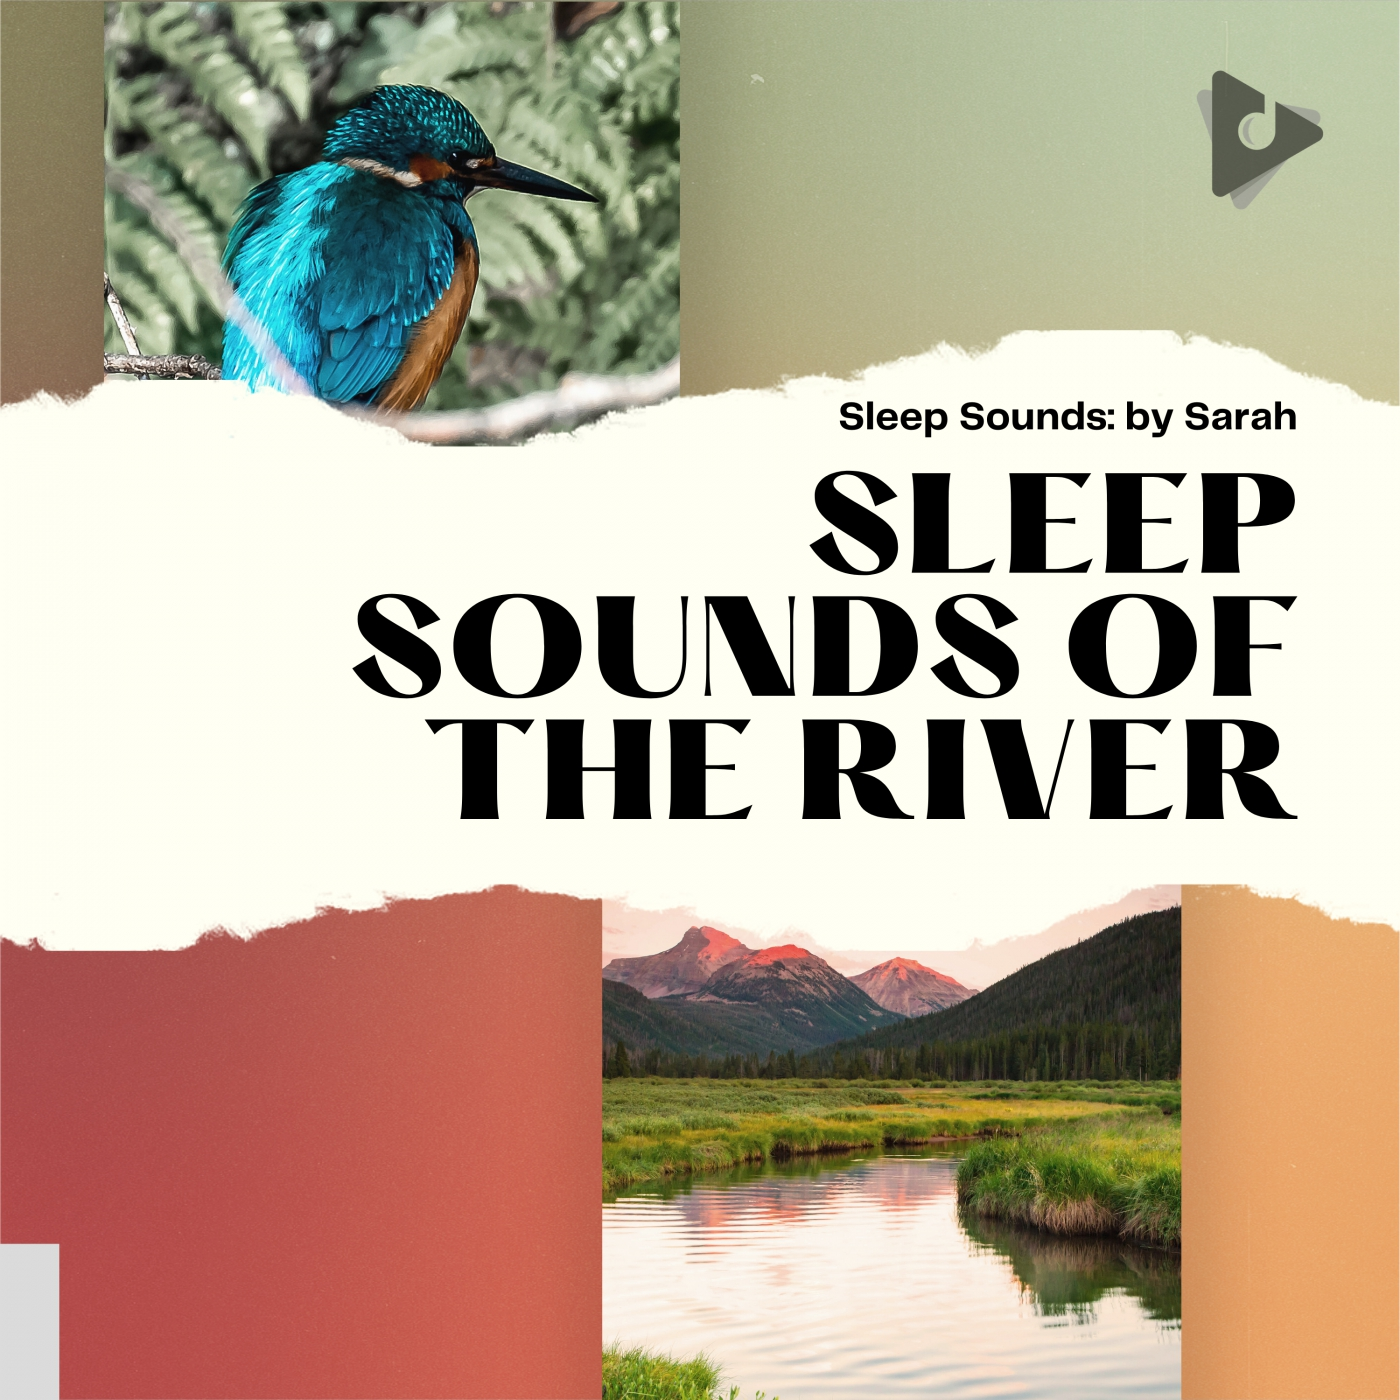 Sleep Sounds of The River